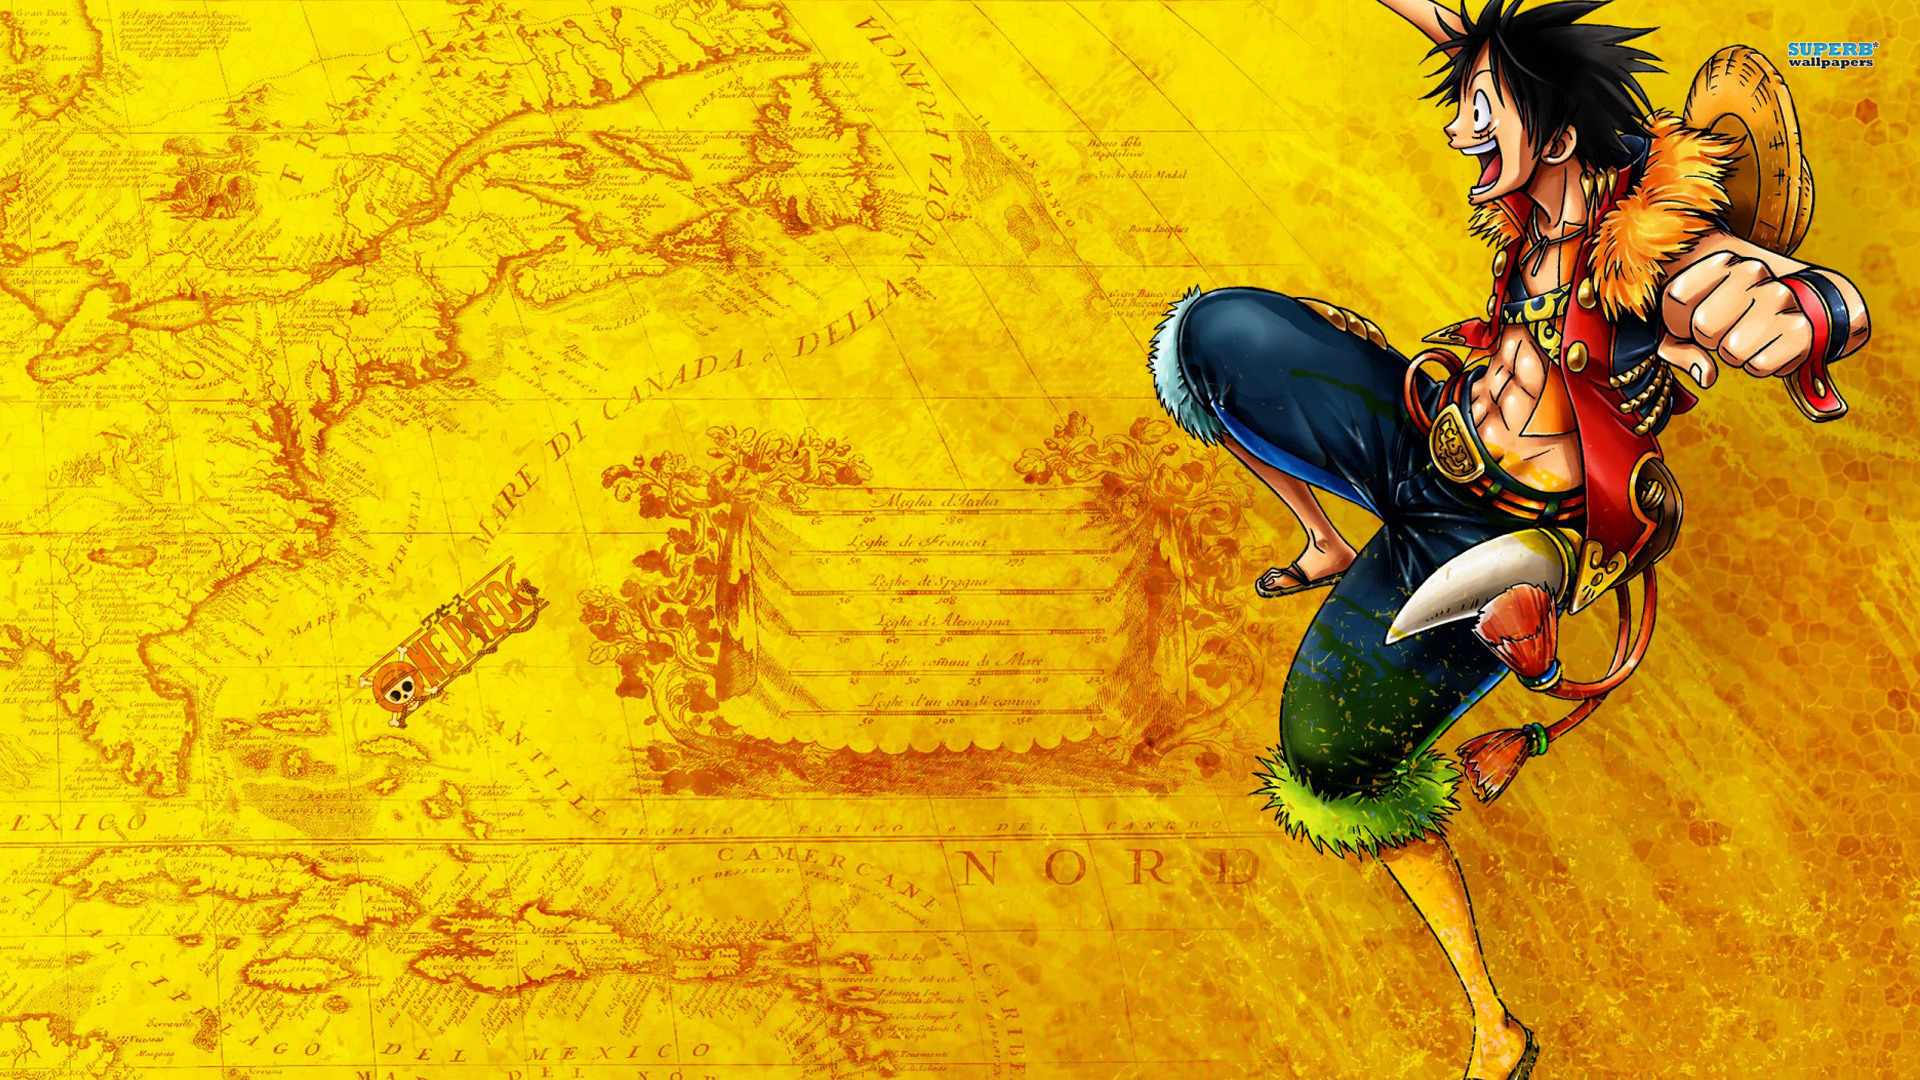 The great collection of one piece logo wallpaper for desktop,. Monkey D Luffy Wallpapers High Quality   Download Free